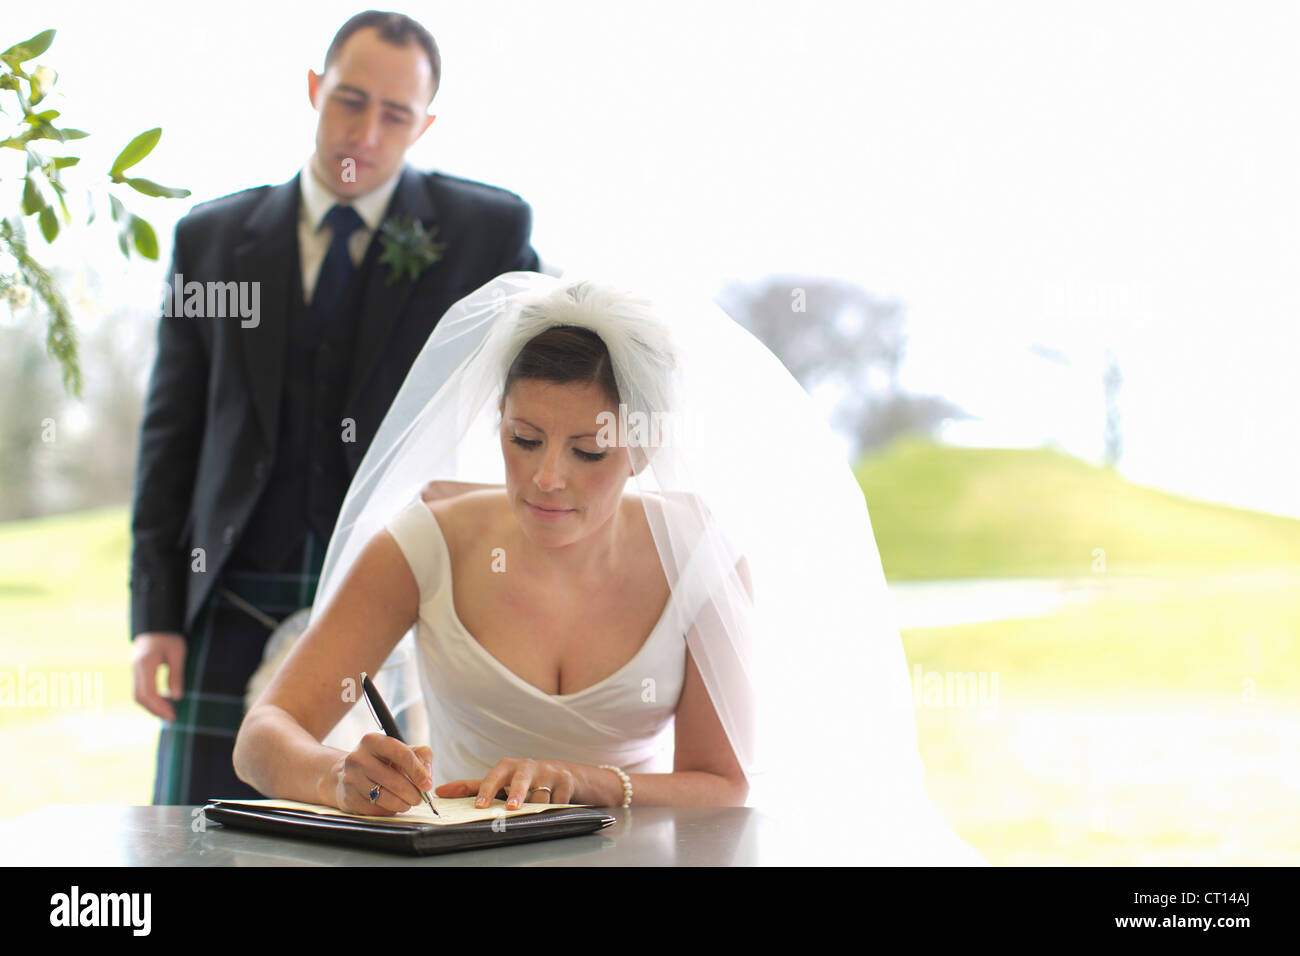 Newlywed couple signing marriage license - Stock Image